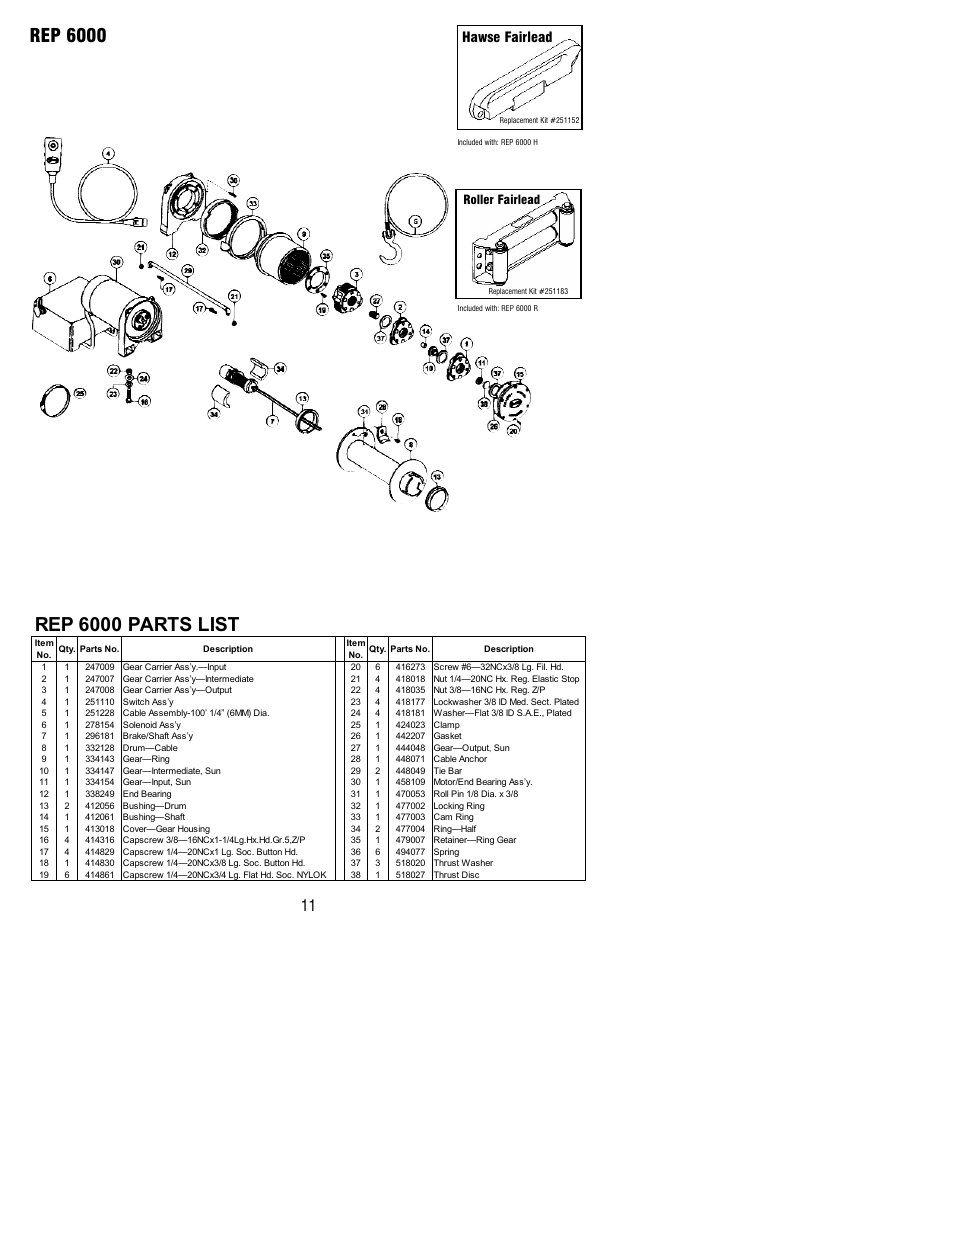 Smittybilt Winch Wiring Diagram. Parts. Wiring Diagram Images